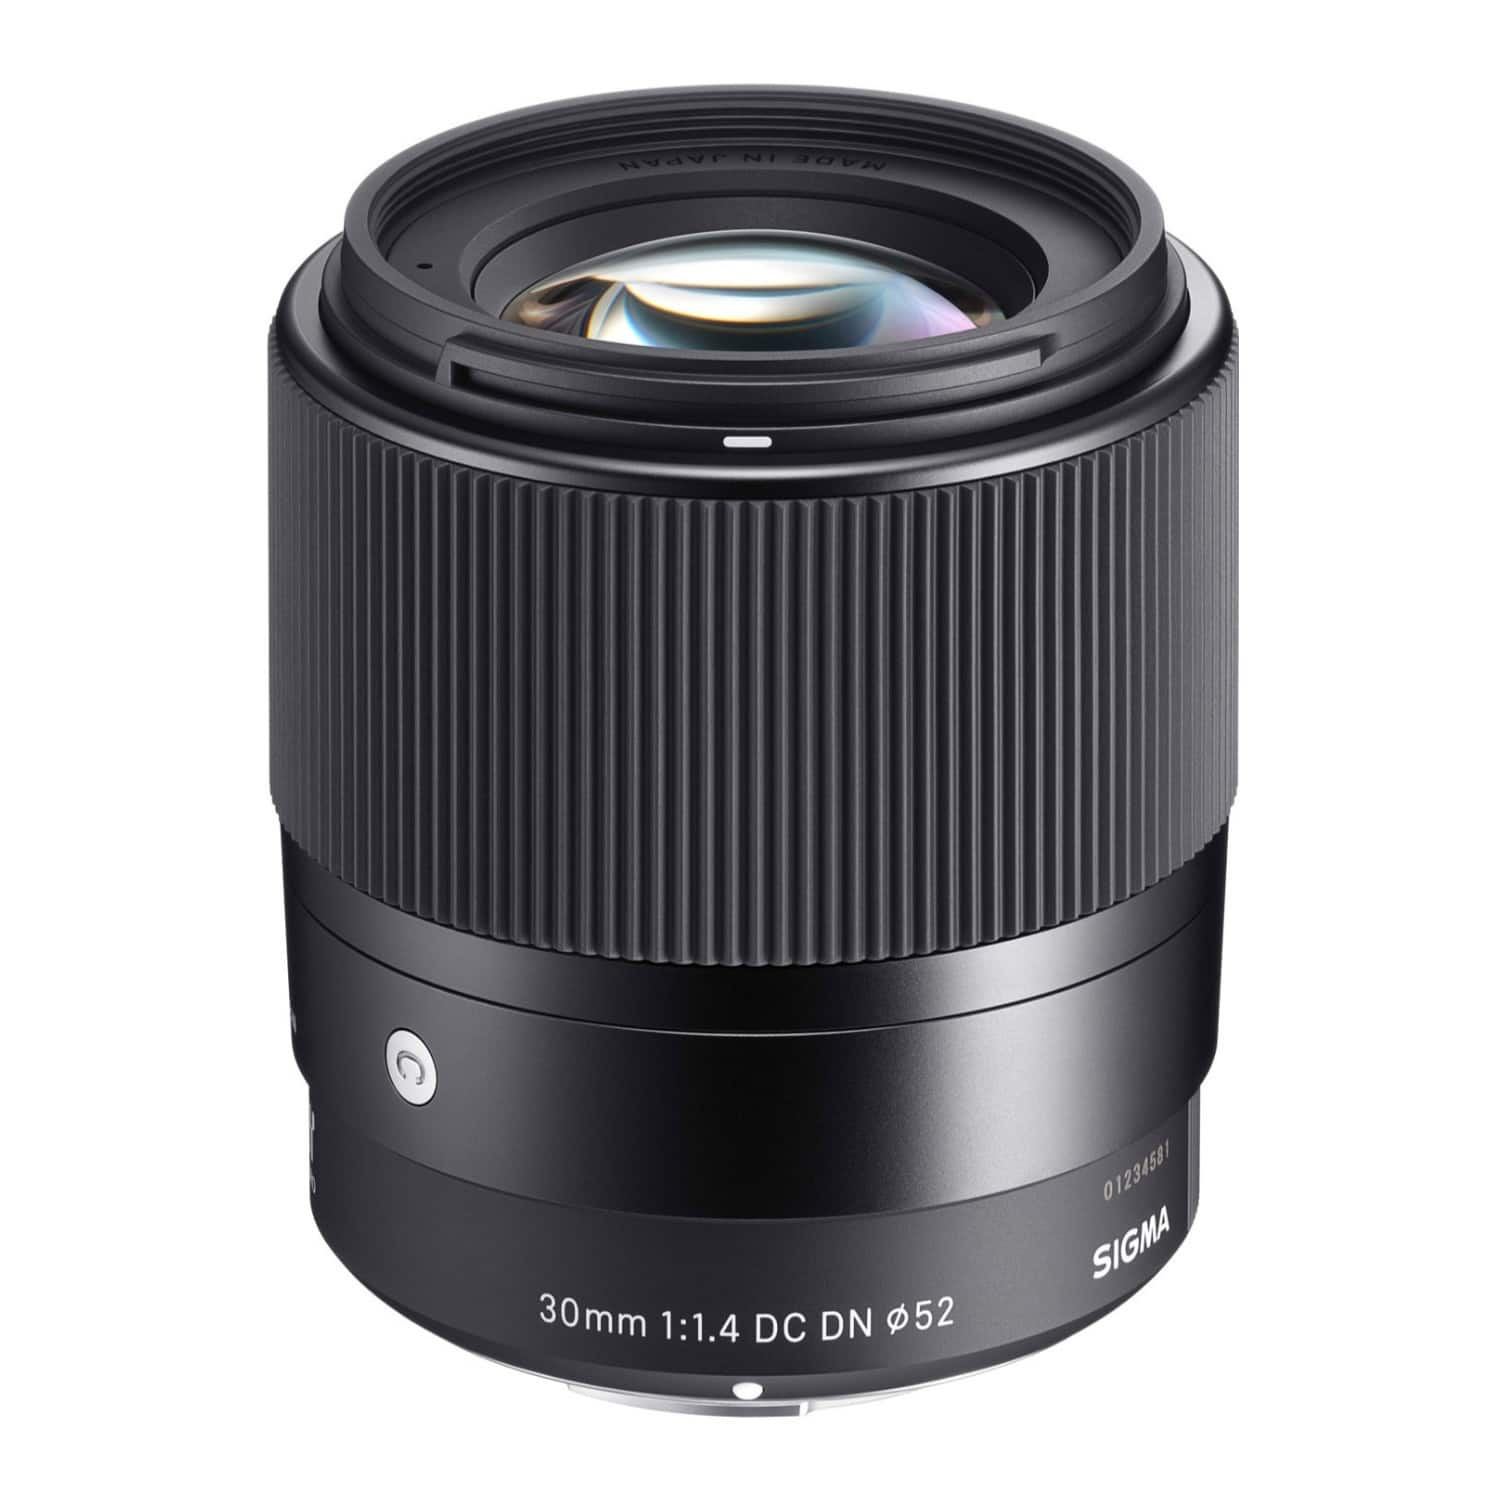 Sigma Lenses for Canon w/ SanDisk 64GB Extreme PRO Memory: 30mm f/1.4 Contemporary DC DN EF-M $289, 56mm f/1.4 $429 + free s/h